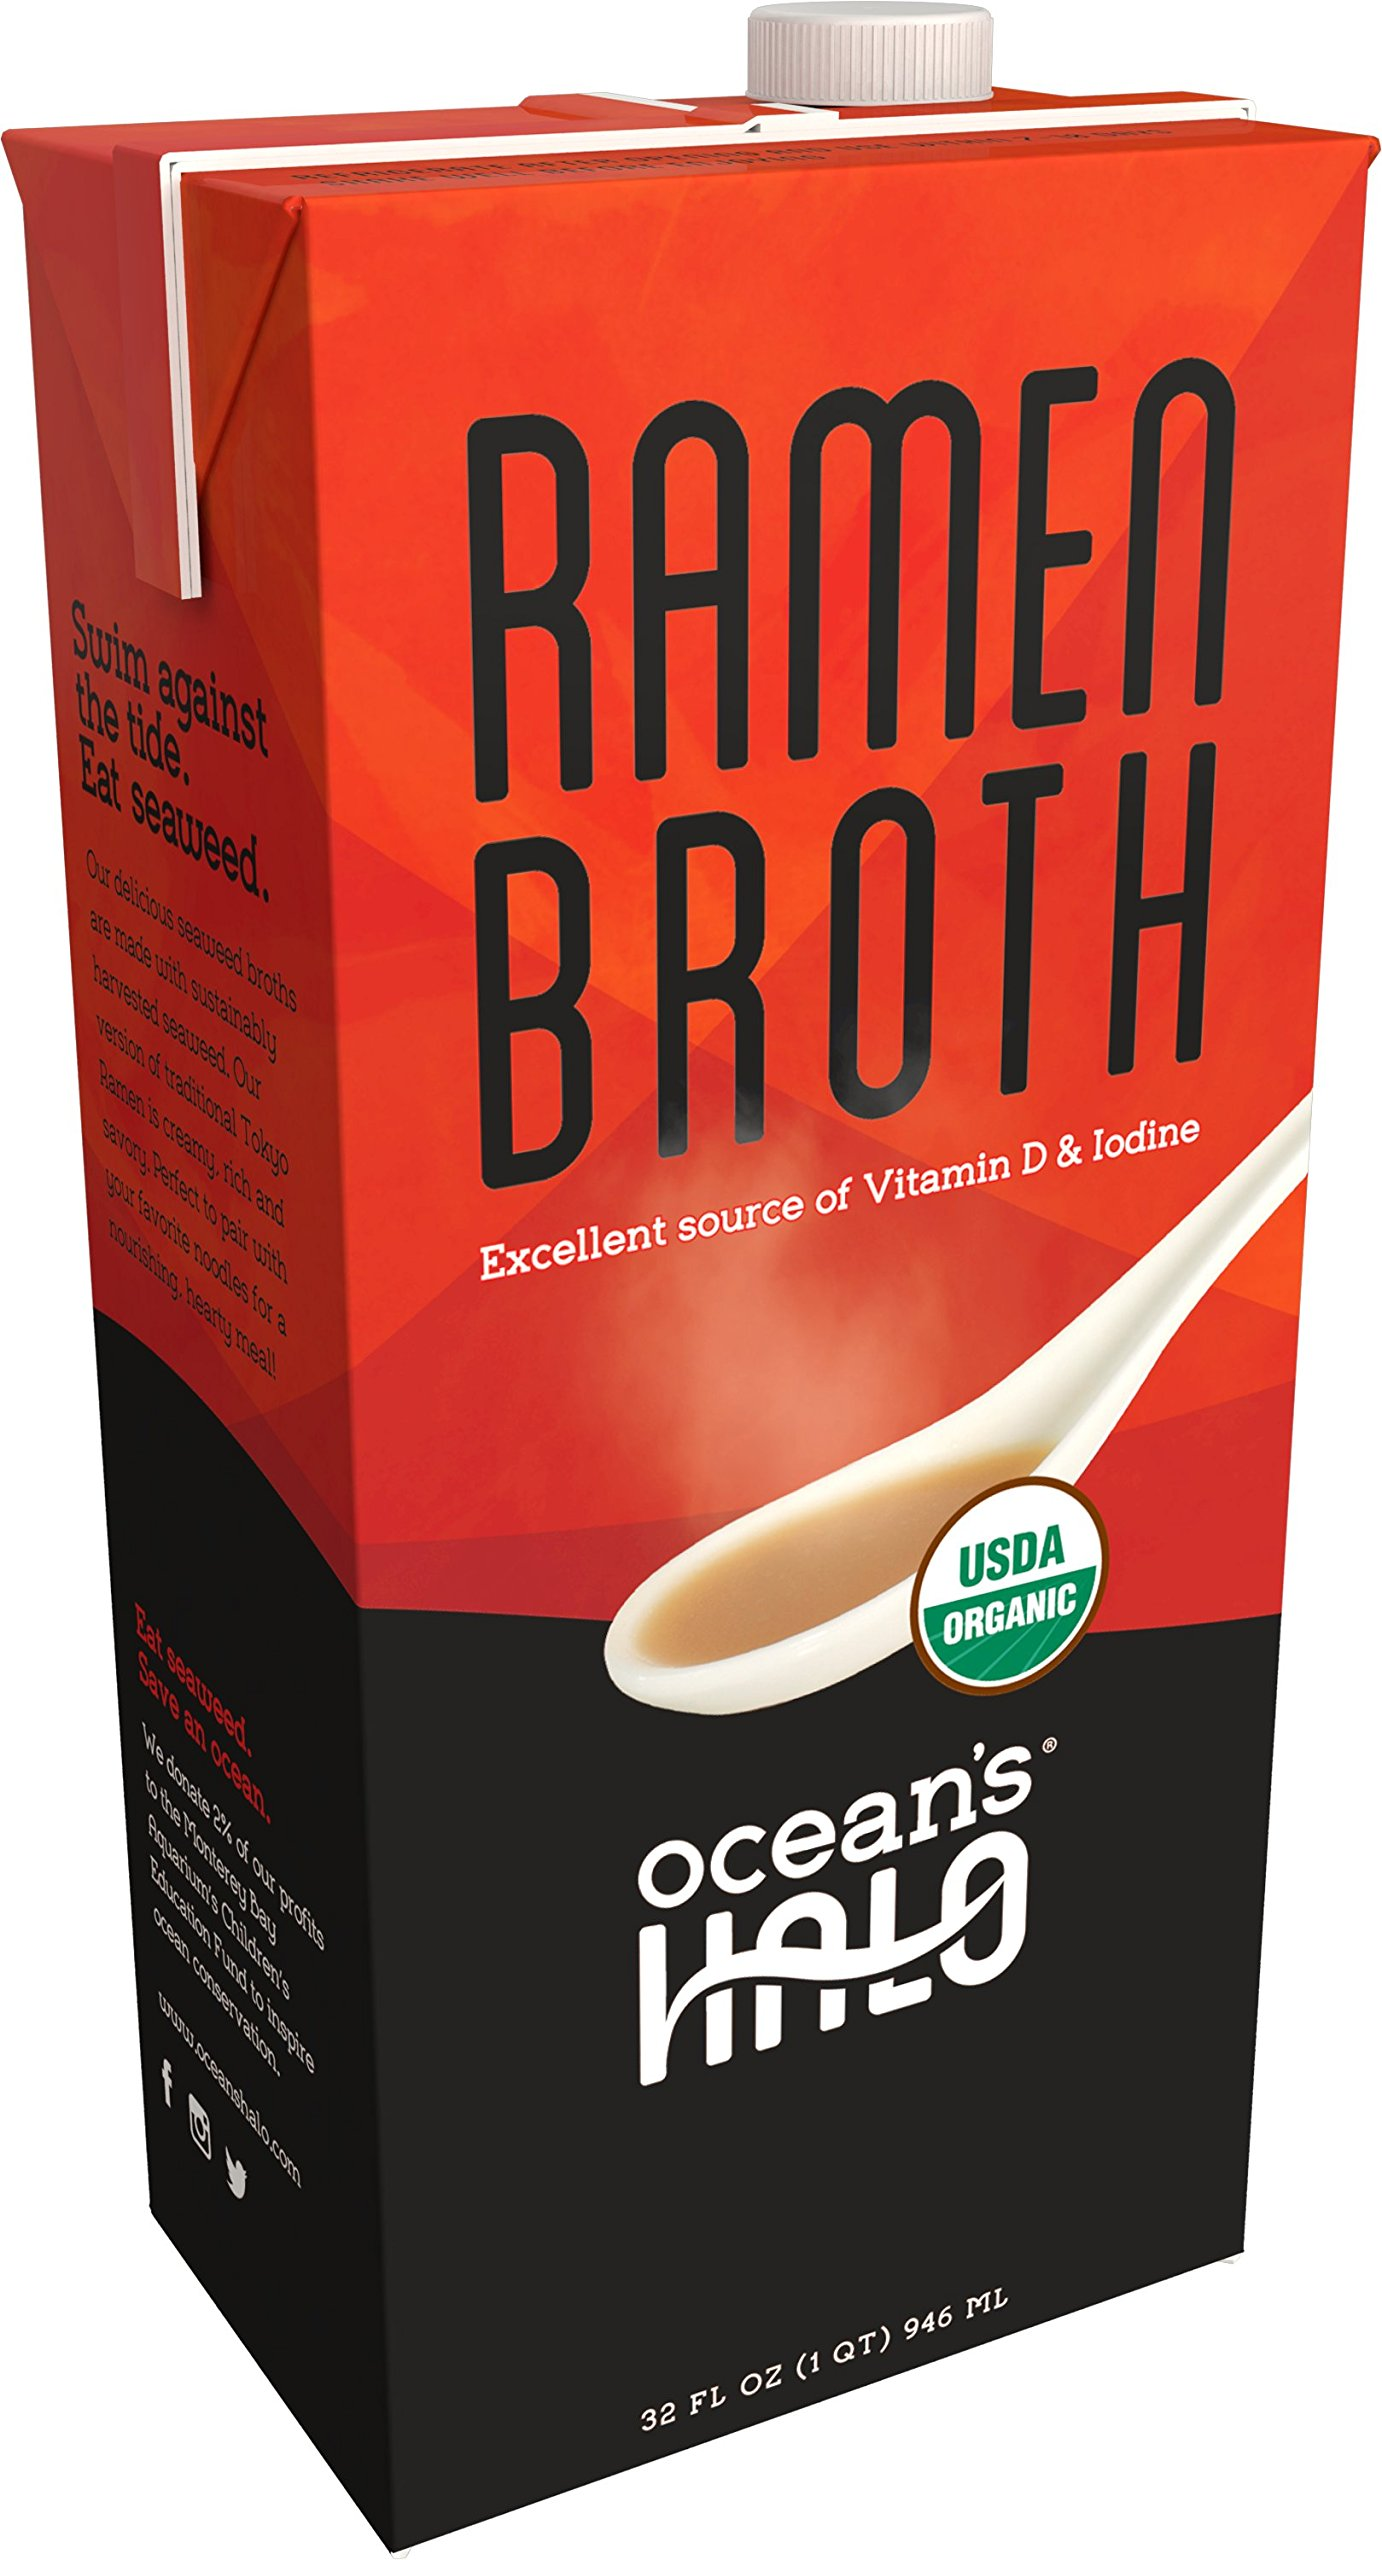 2 Units of Organic Ramen Broth by Ocean's Halo. This delicious kelp-based broth is inspired from Tokyo-style Tonkotsu, and is loaded with authentic flavors as well as vitamins, minerals and protein.